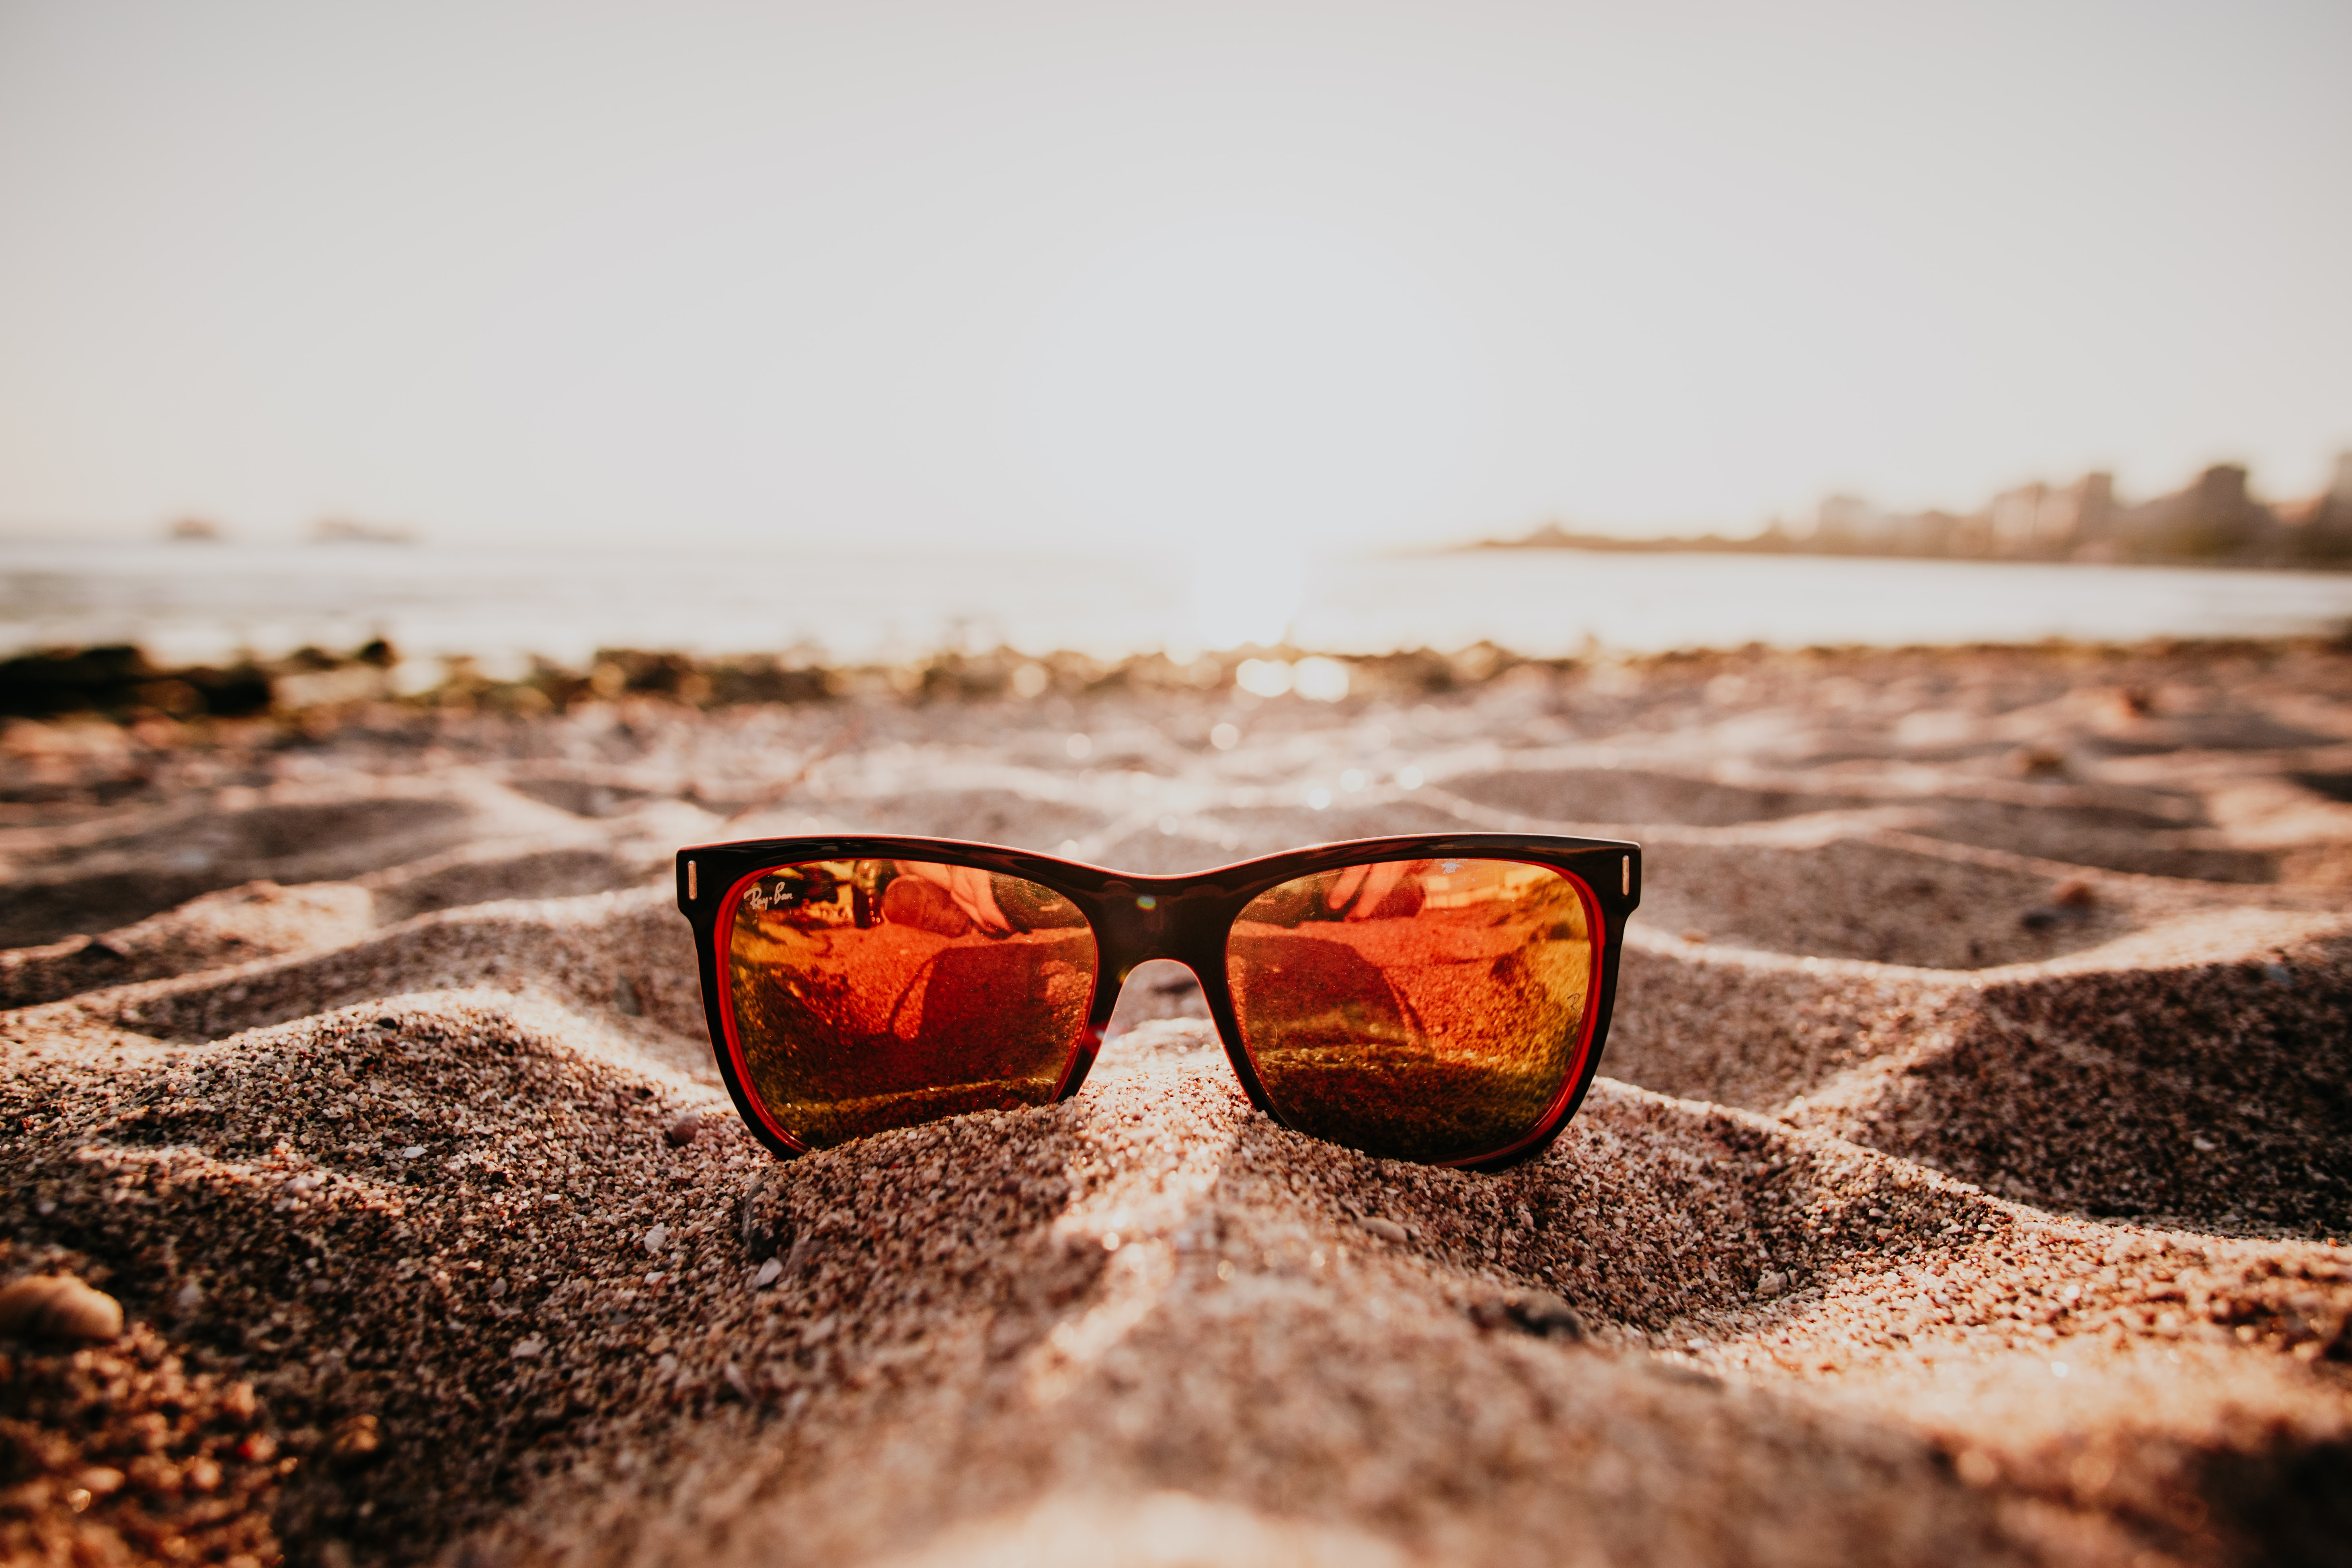 sunglasses on sand